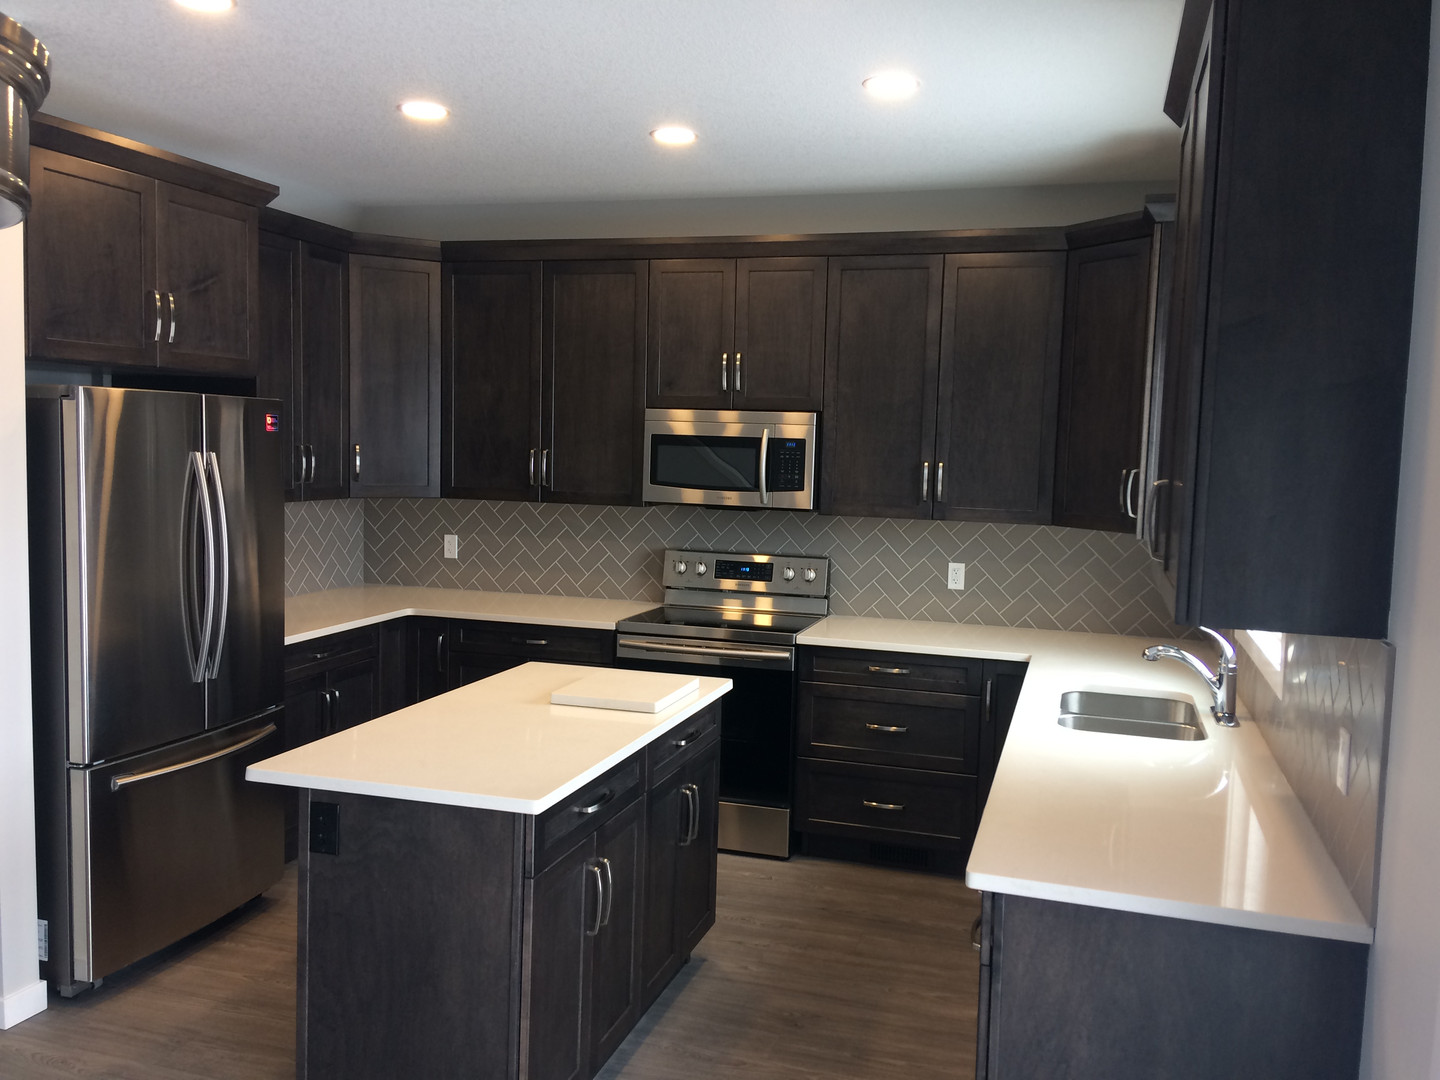 Maple cabinets with island